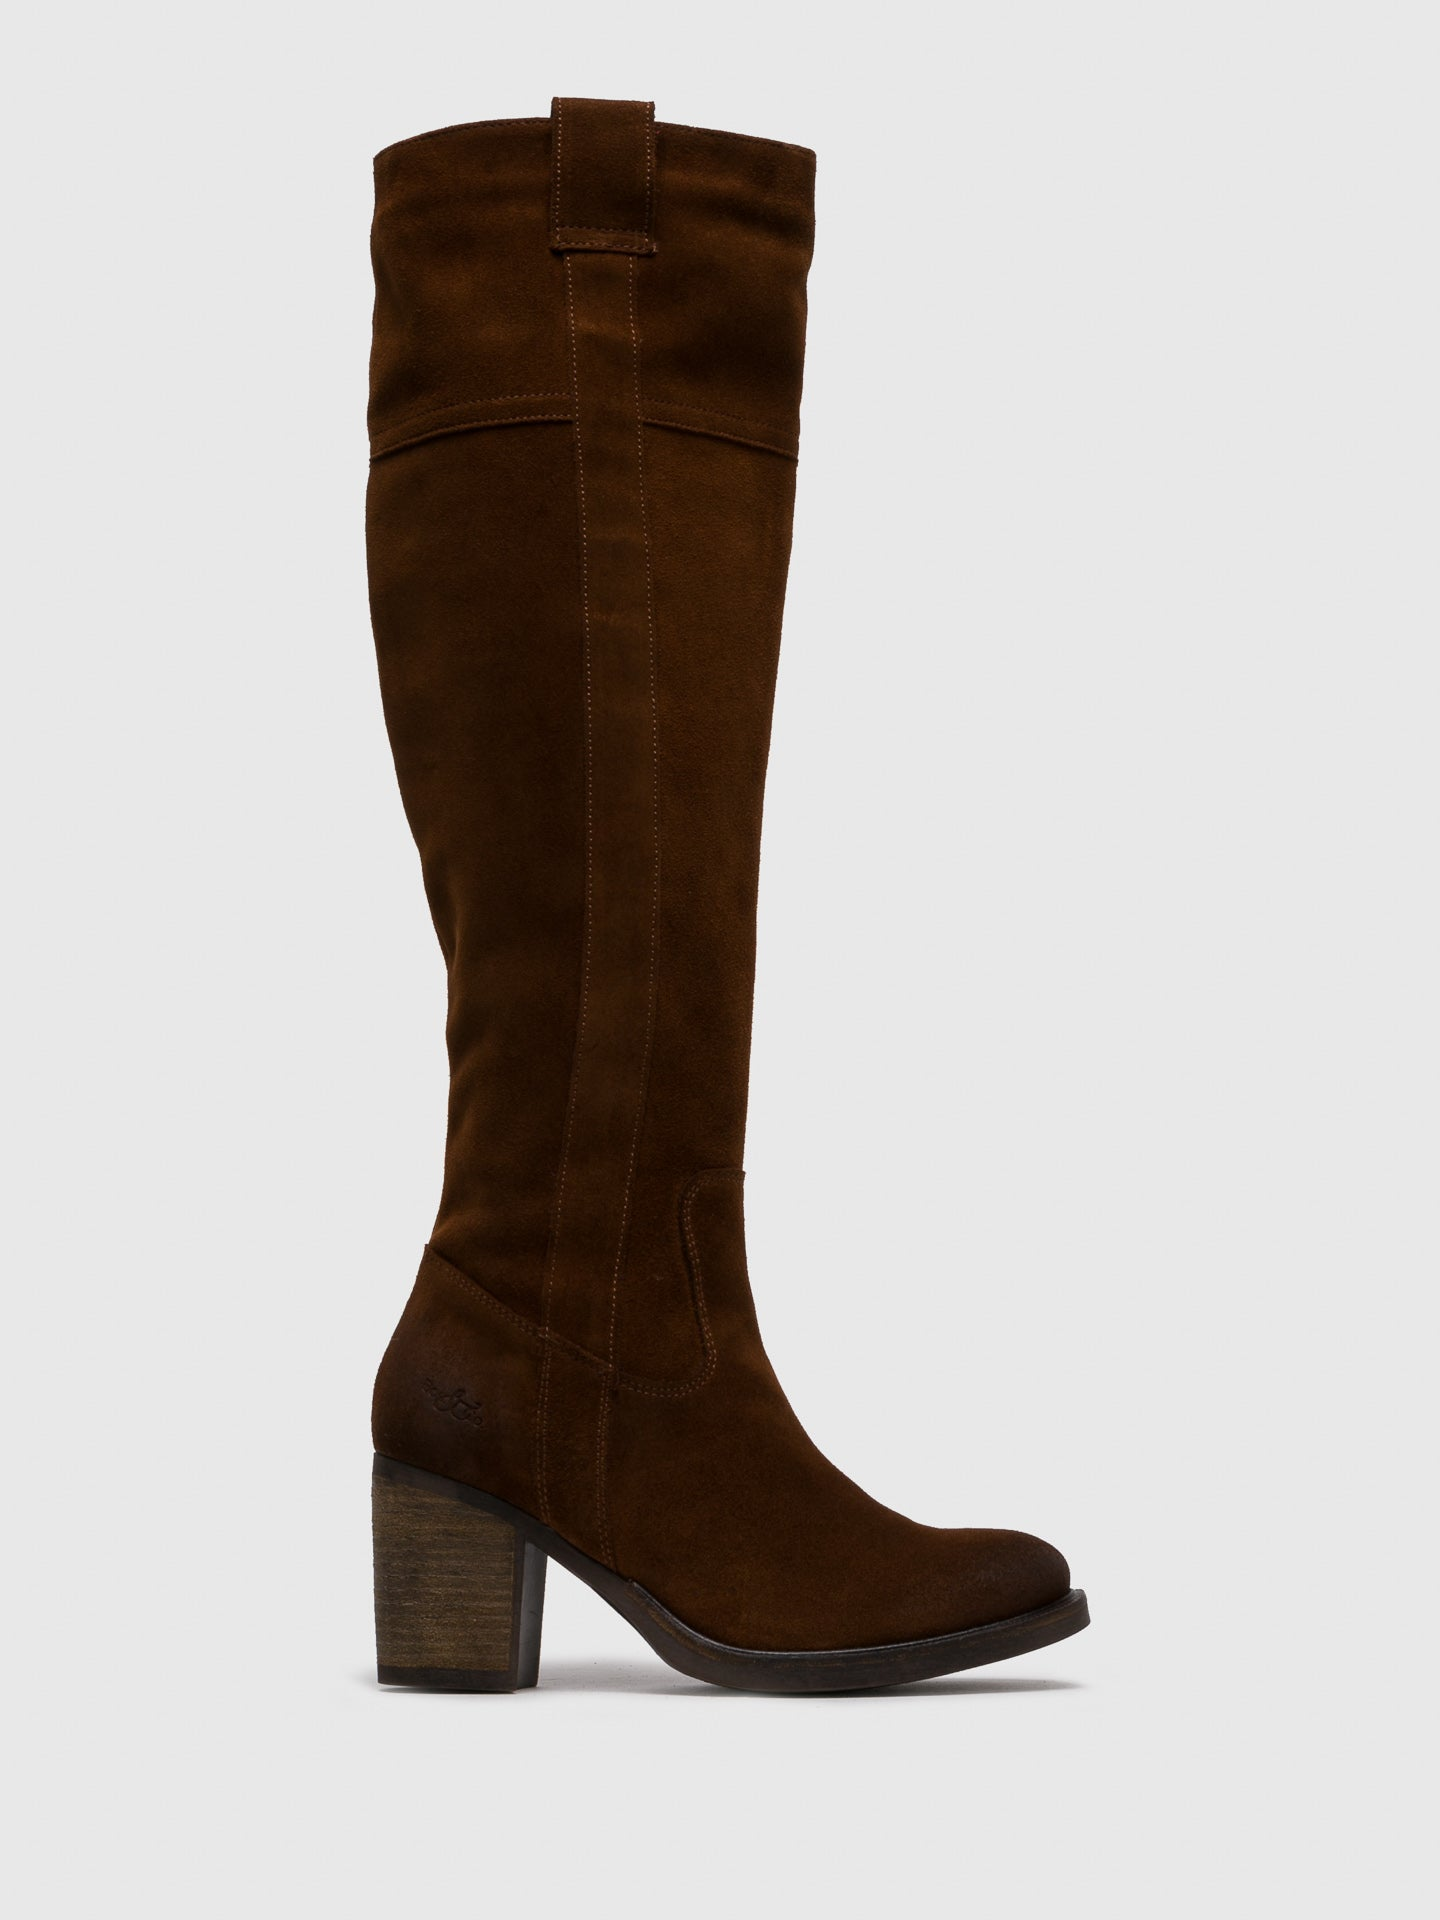 Bos&Co Peru Knee-High Boots